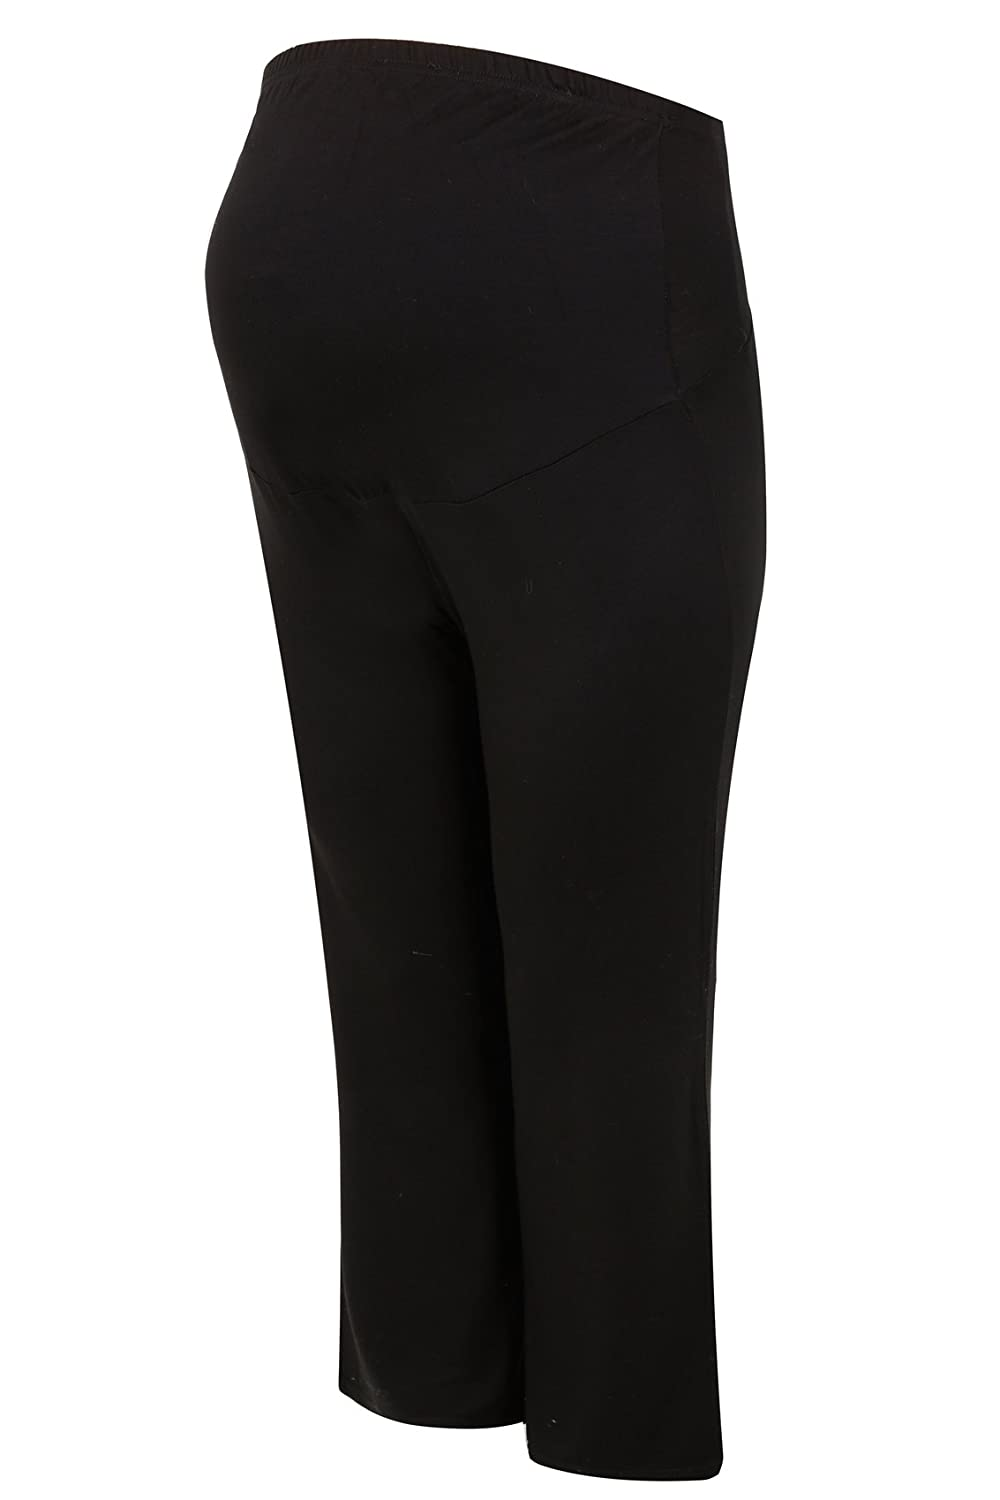 Women's Plus Size Bump It up Maternity Yoga Pants with Control Panel